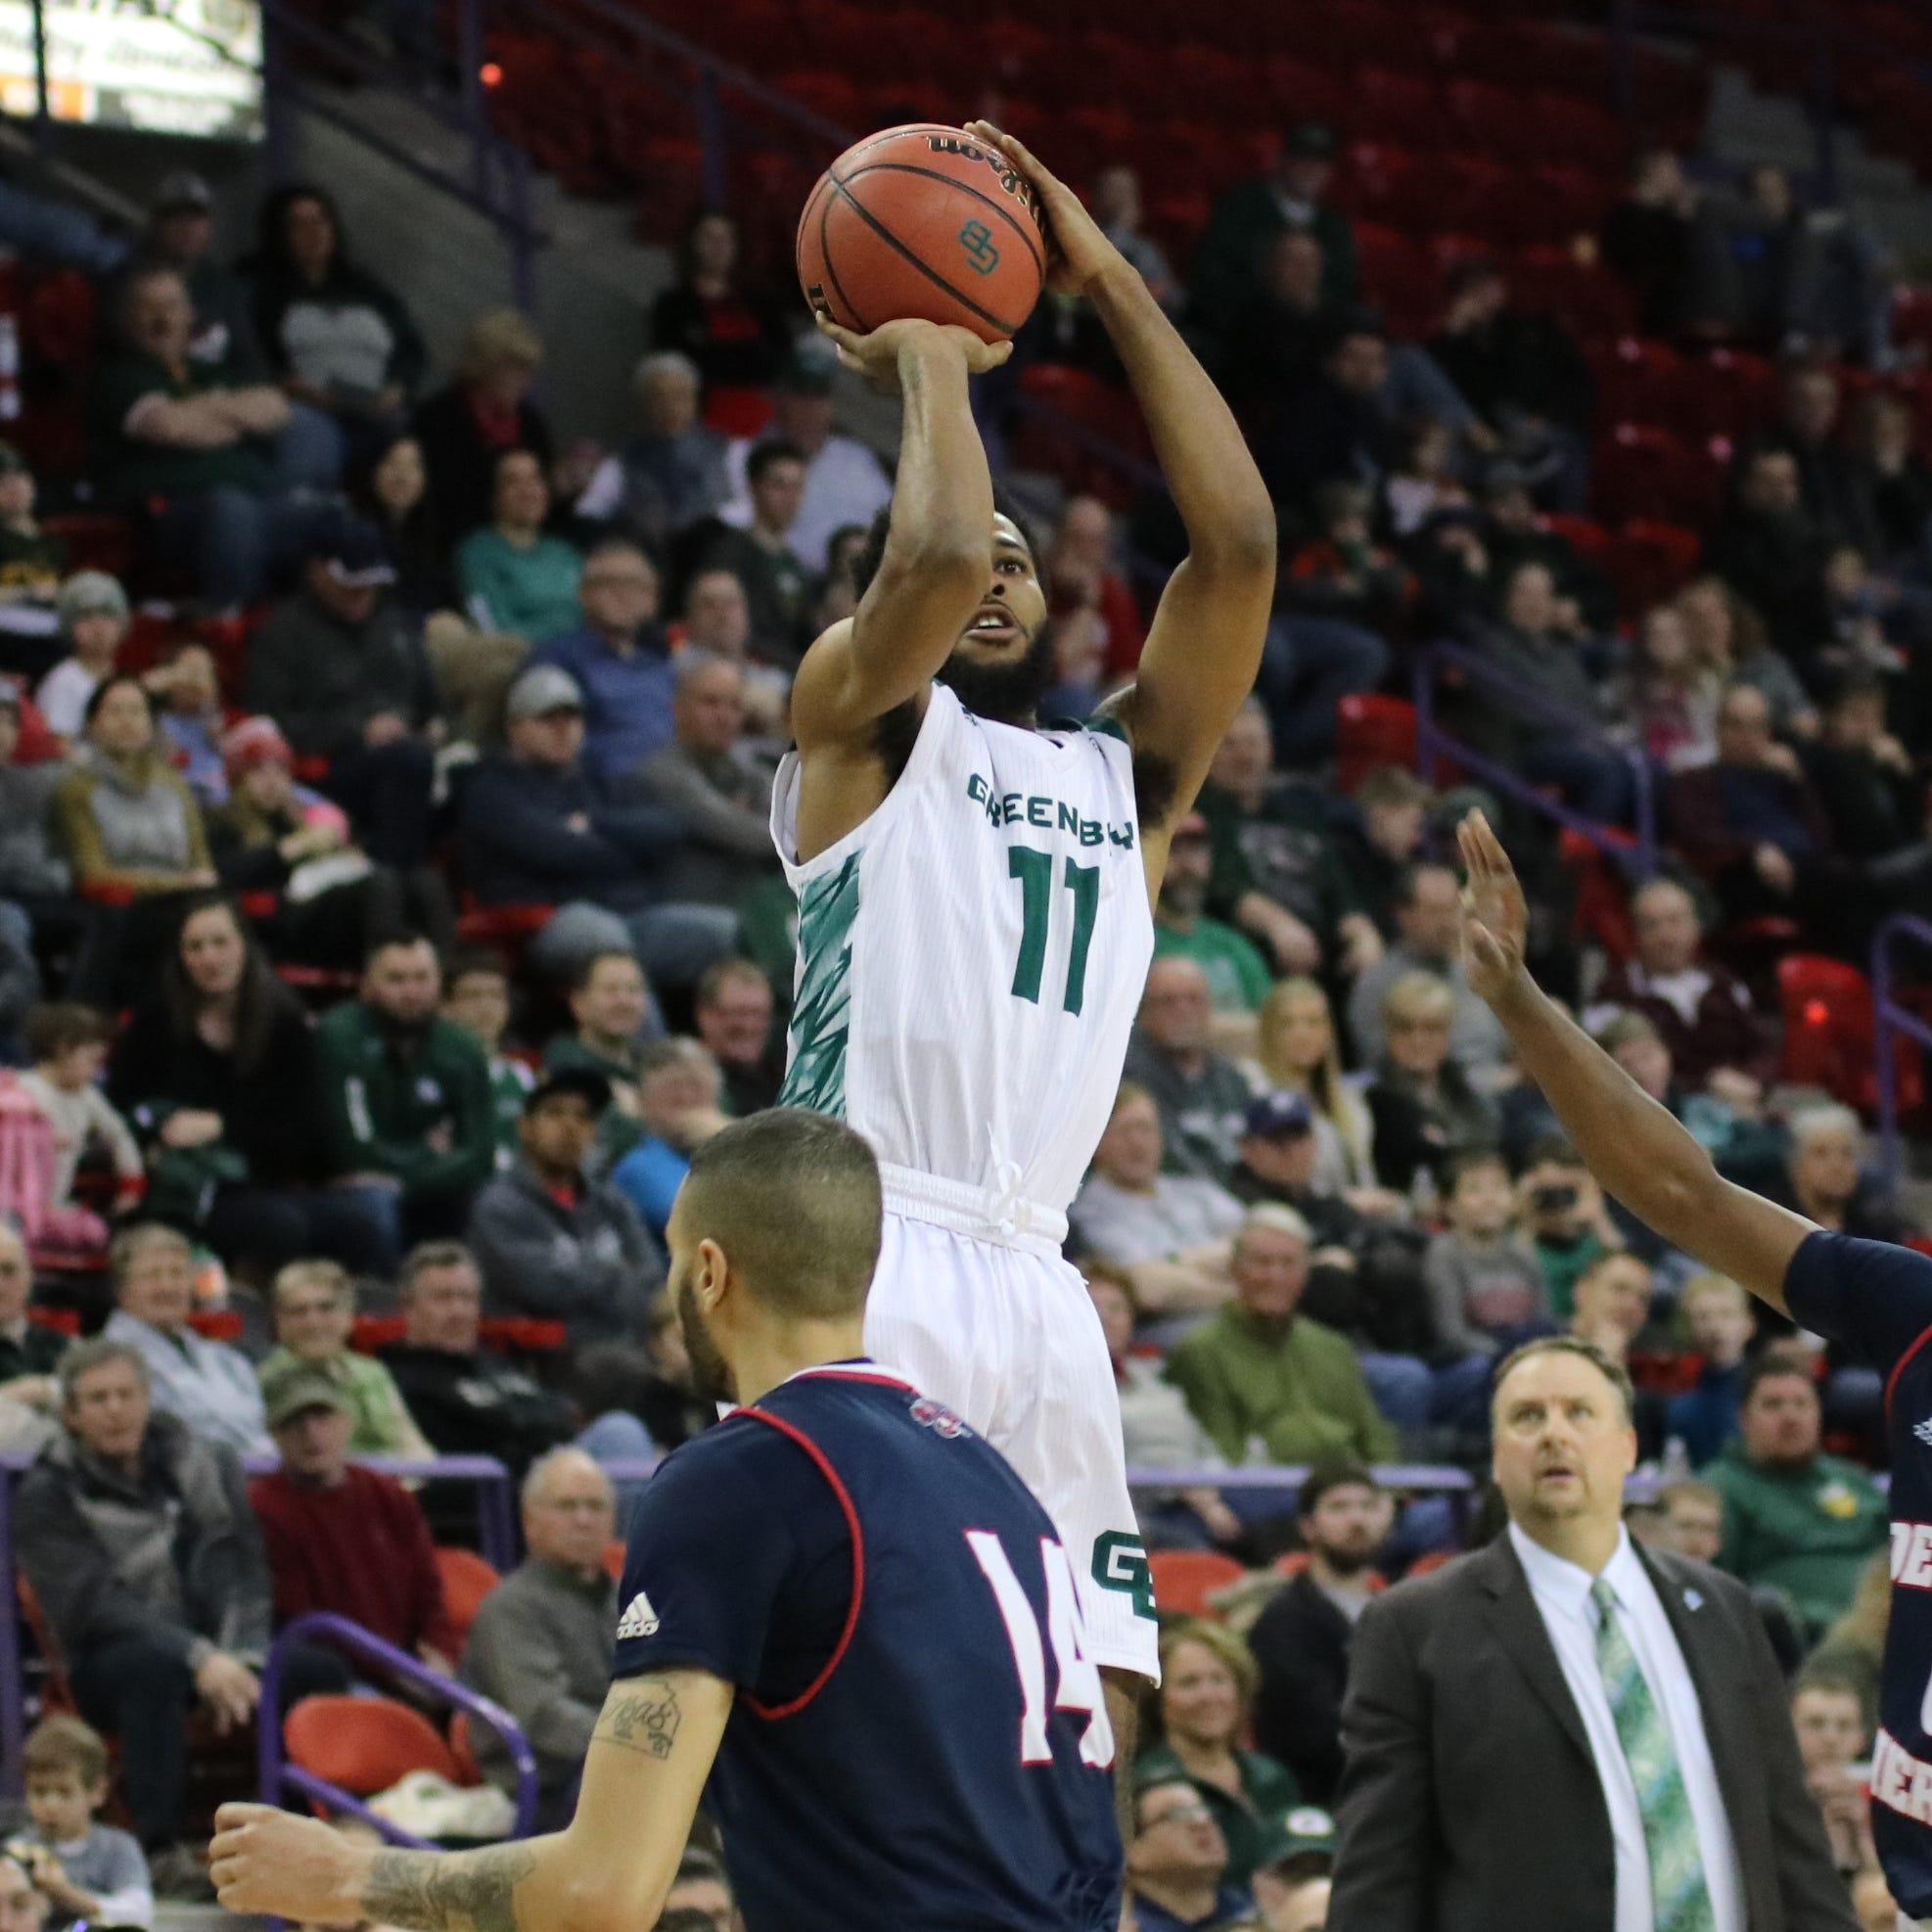 UWGB men: McCloud leads Phoenix comeback over Detroit